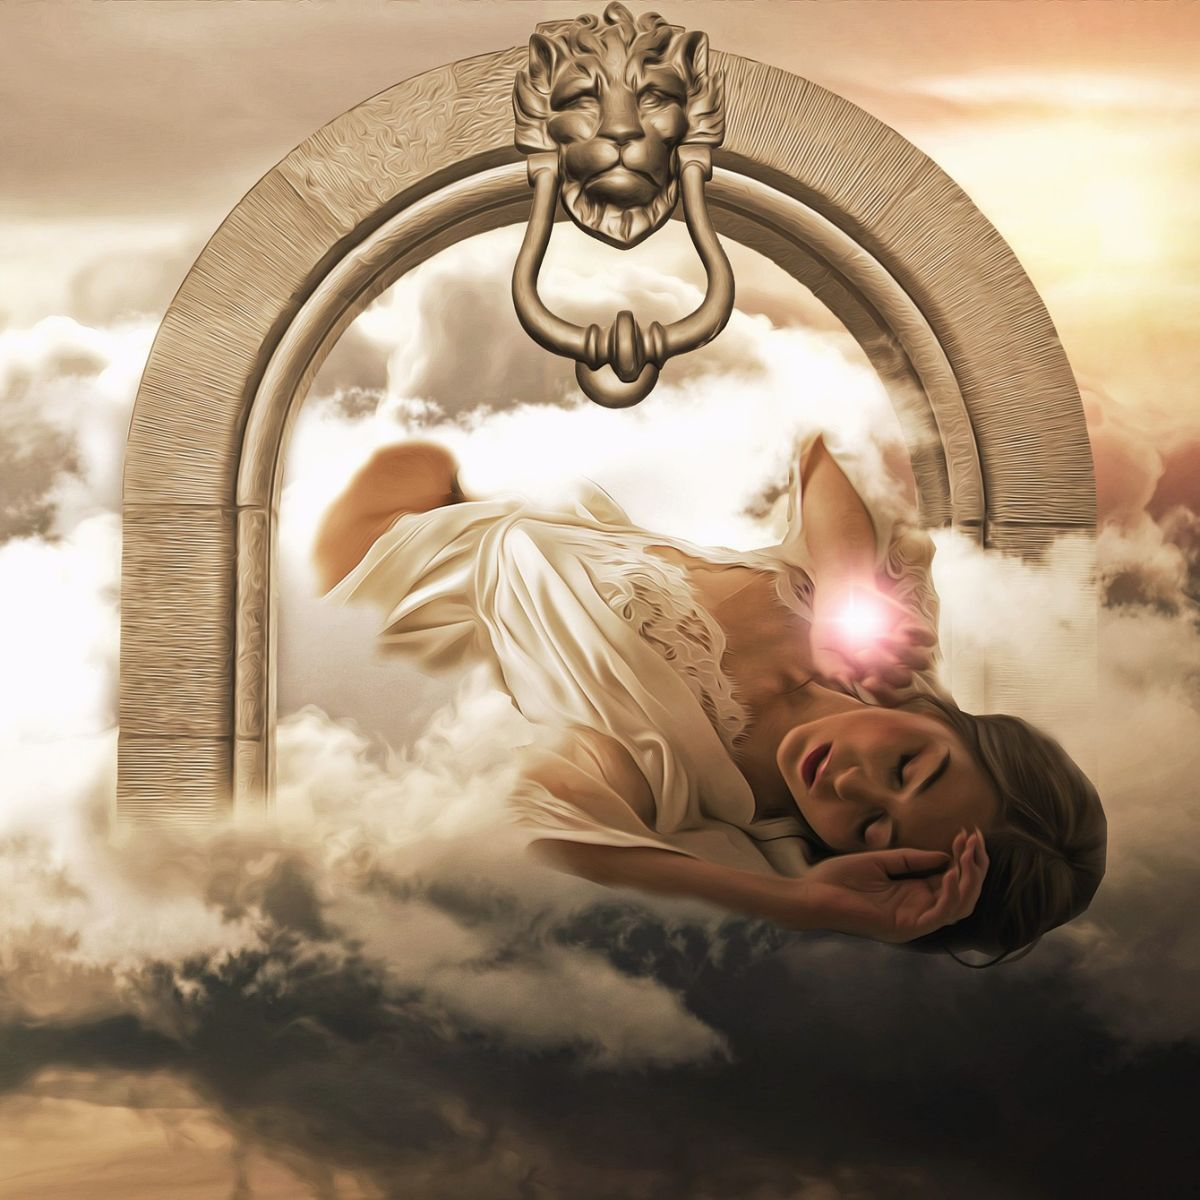 Woman in fantastic dream world, lions head, gate, fantasy, sky, clouds